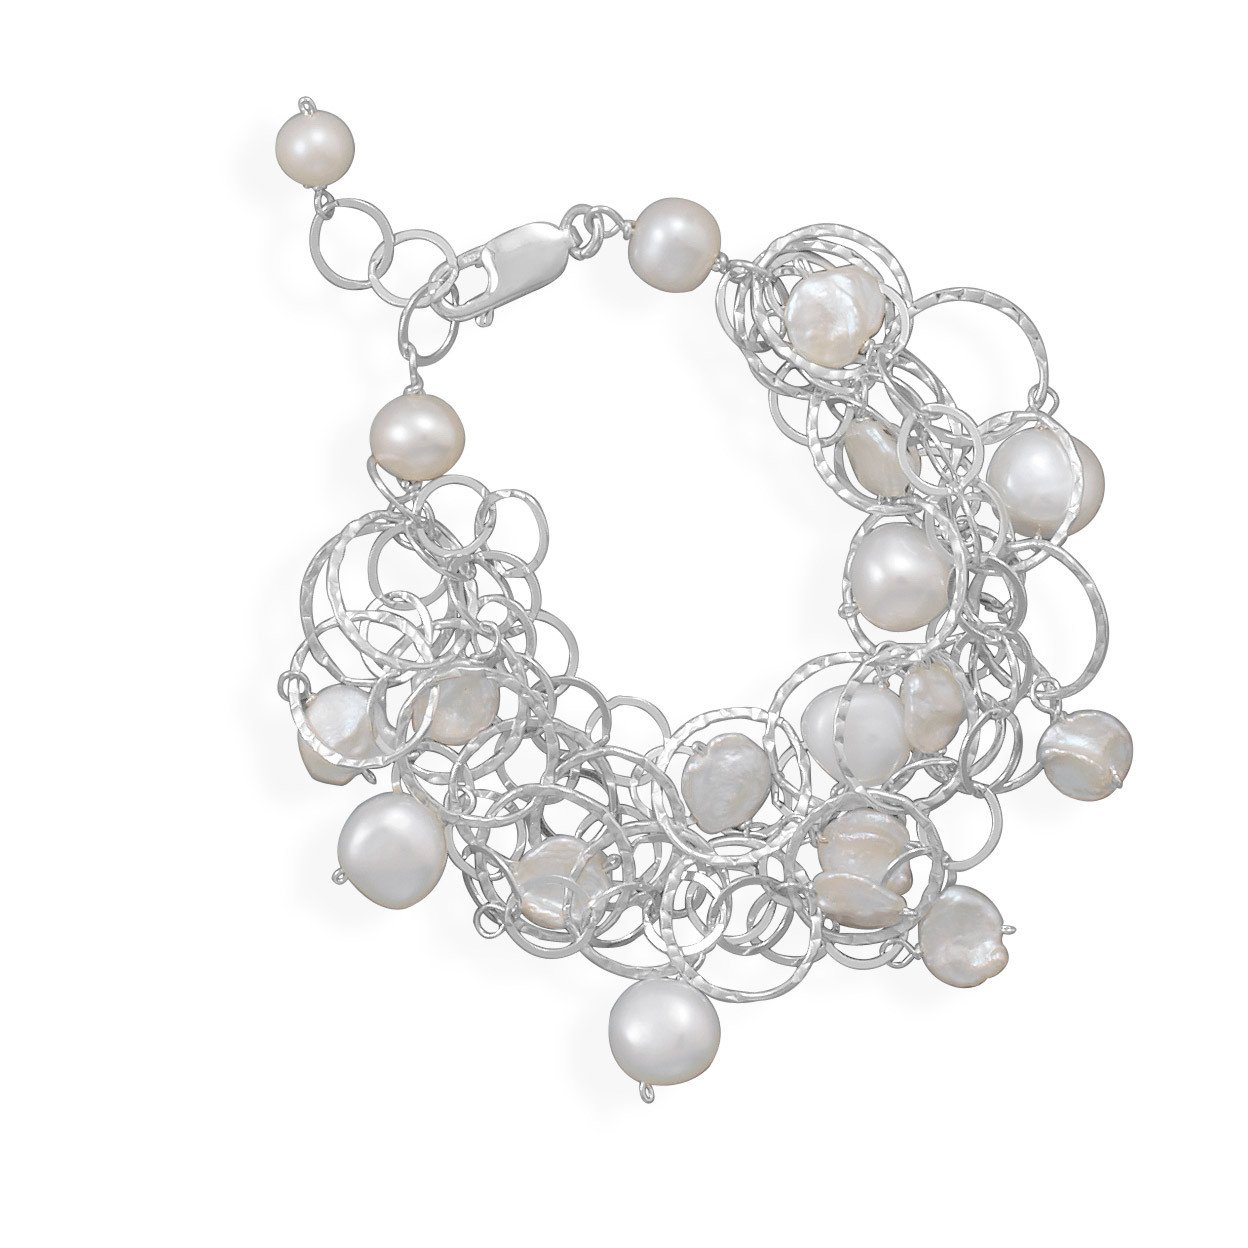 7″+1″ Extension 5 Strand Bracelet with Cultured Freshwater Pearls